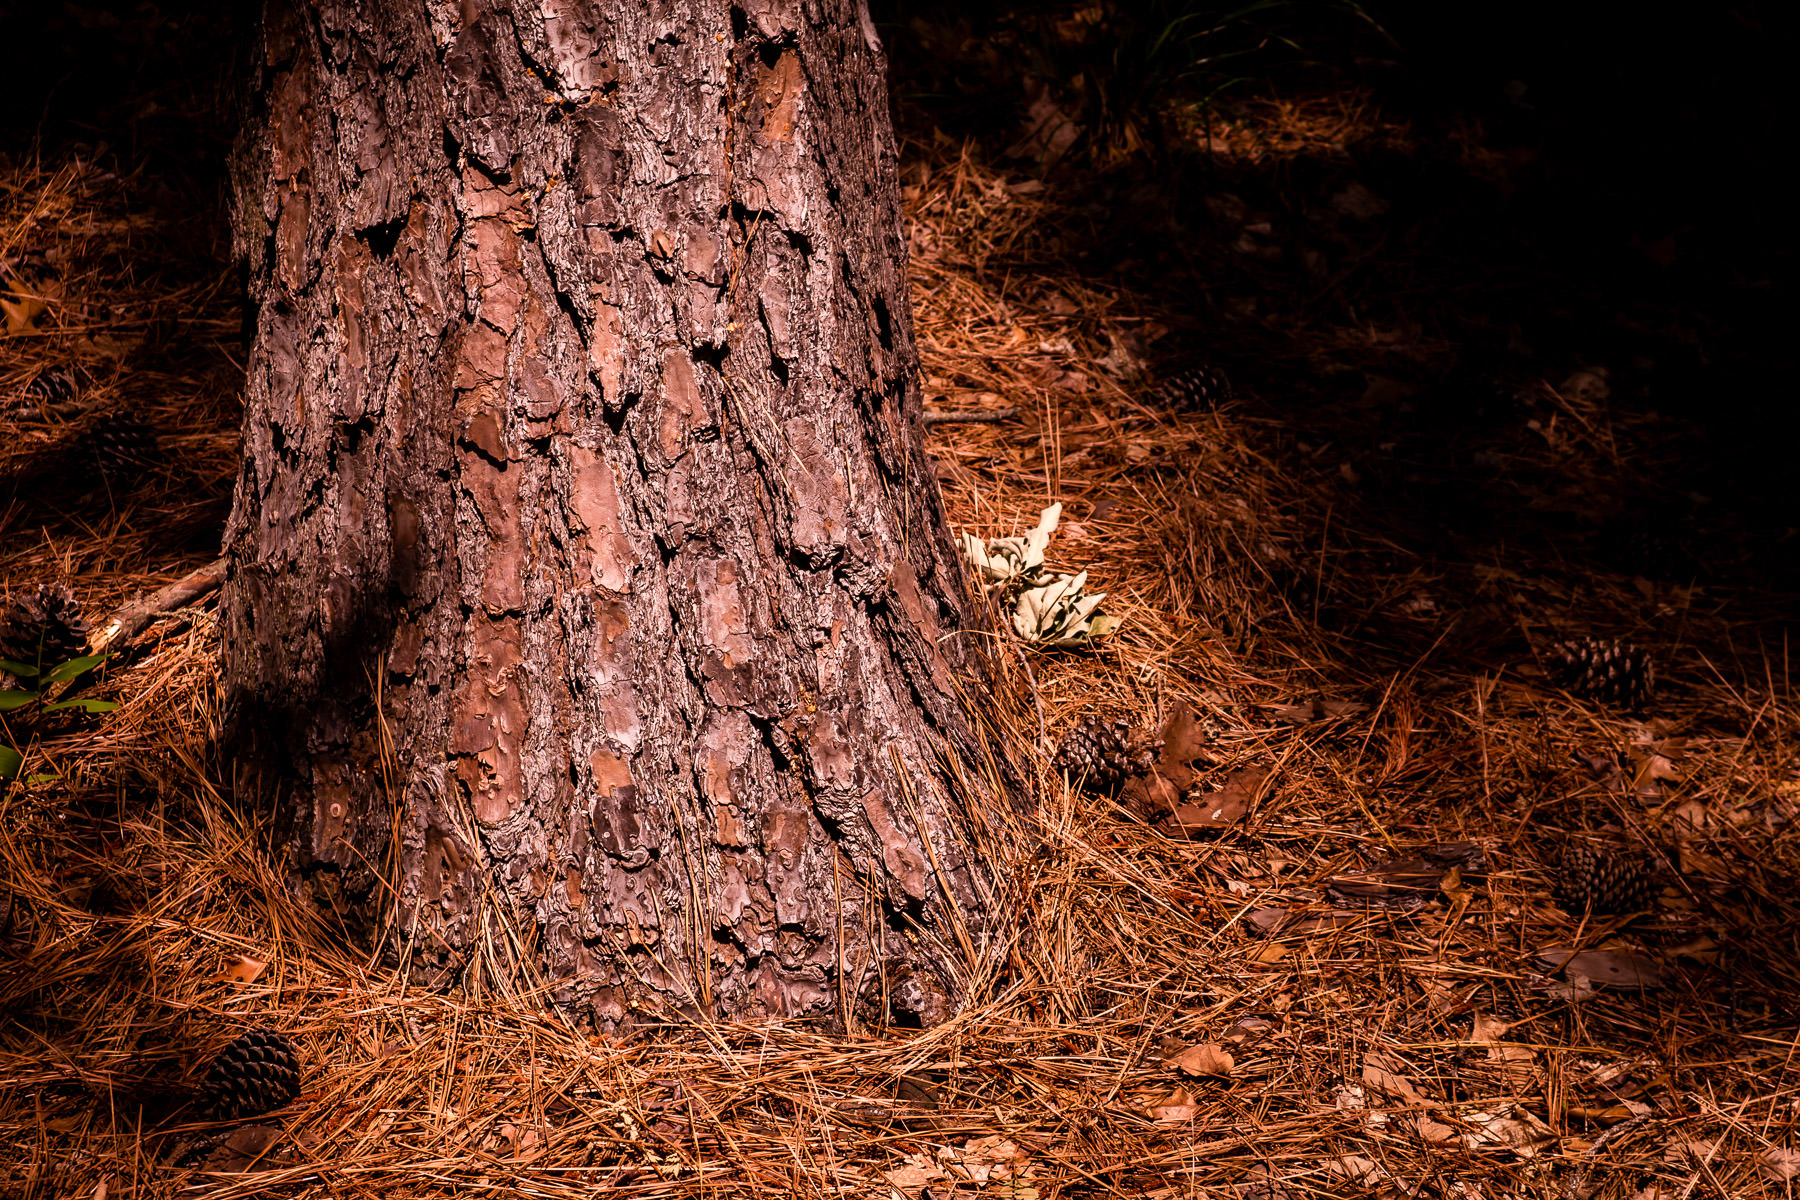 A pine tree grows in the forest at Tyler State Park, Texas.